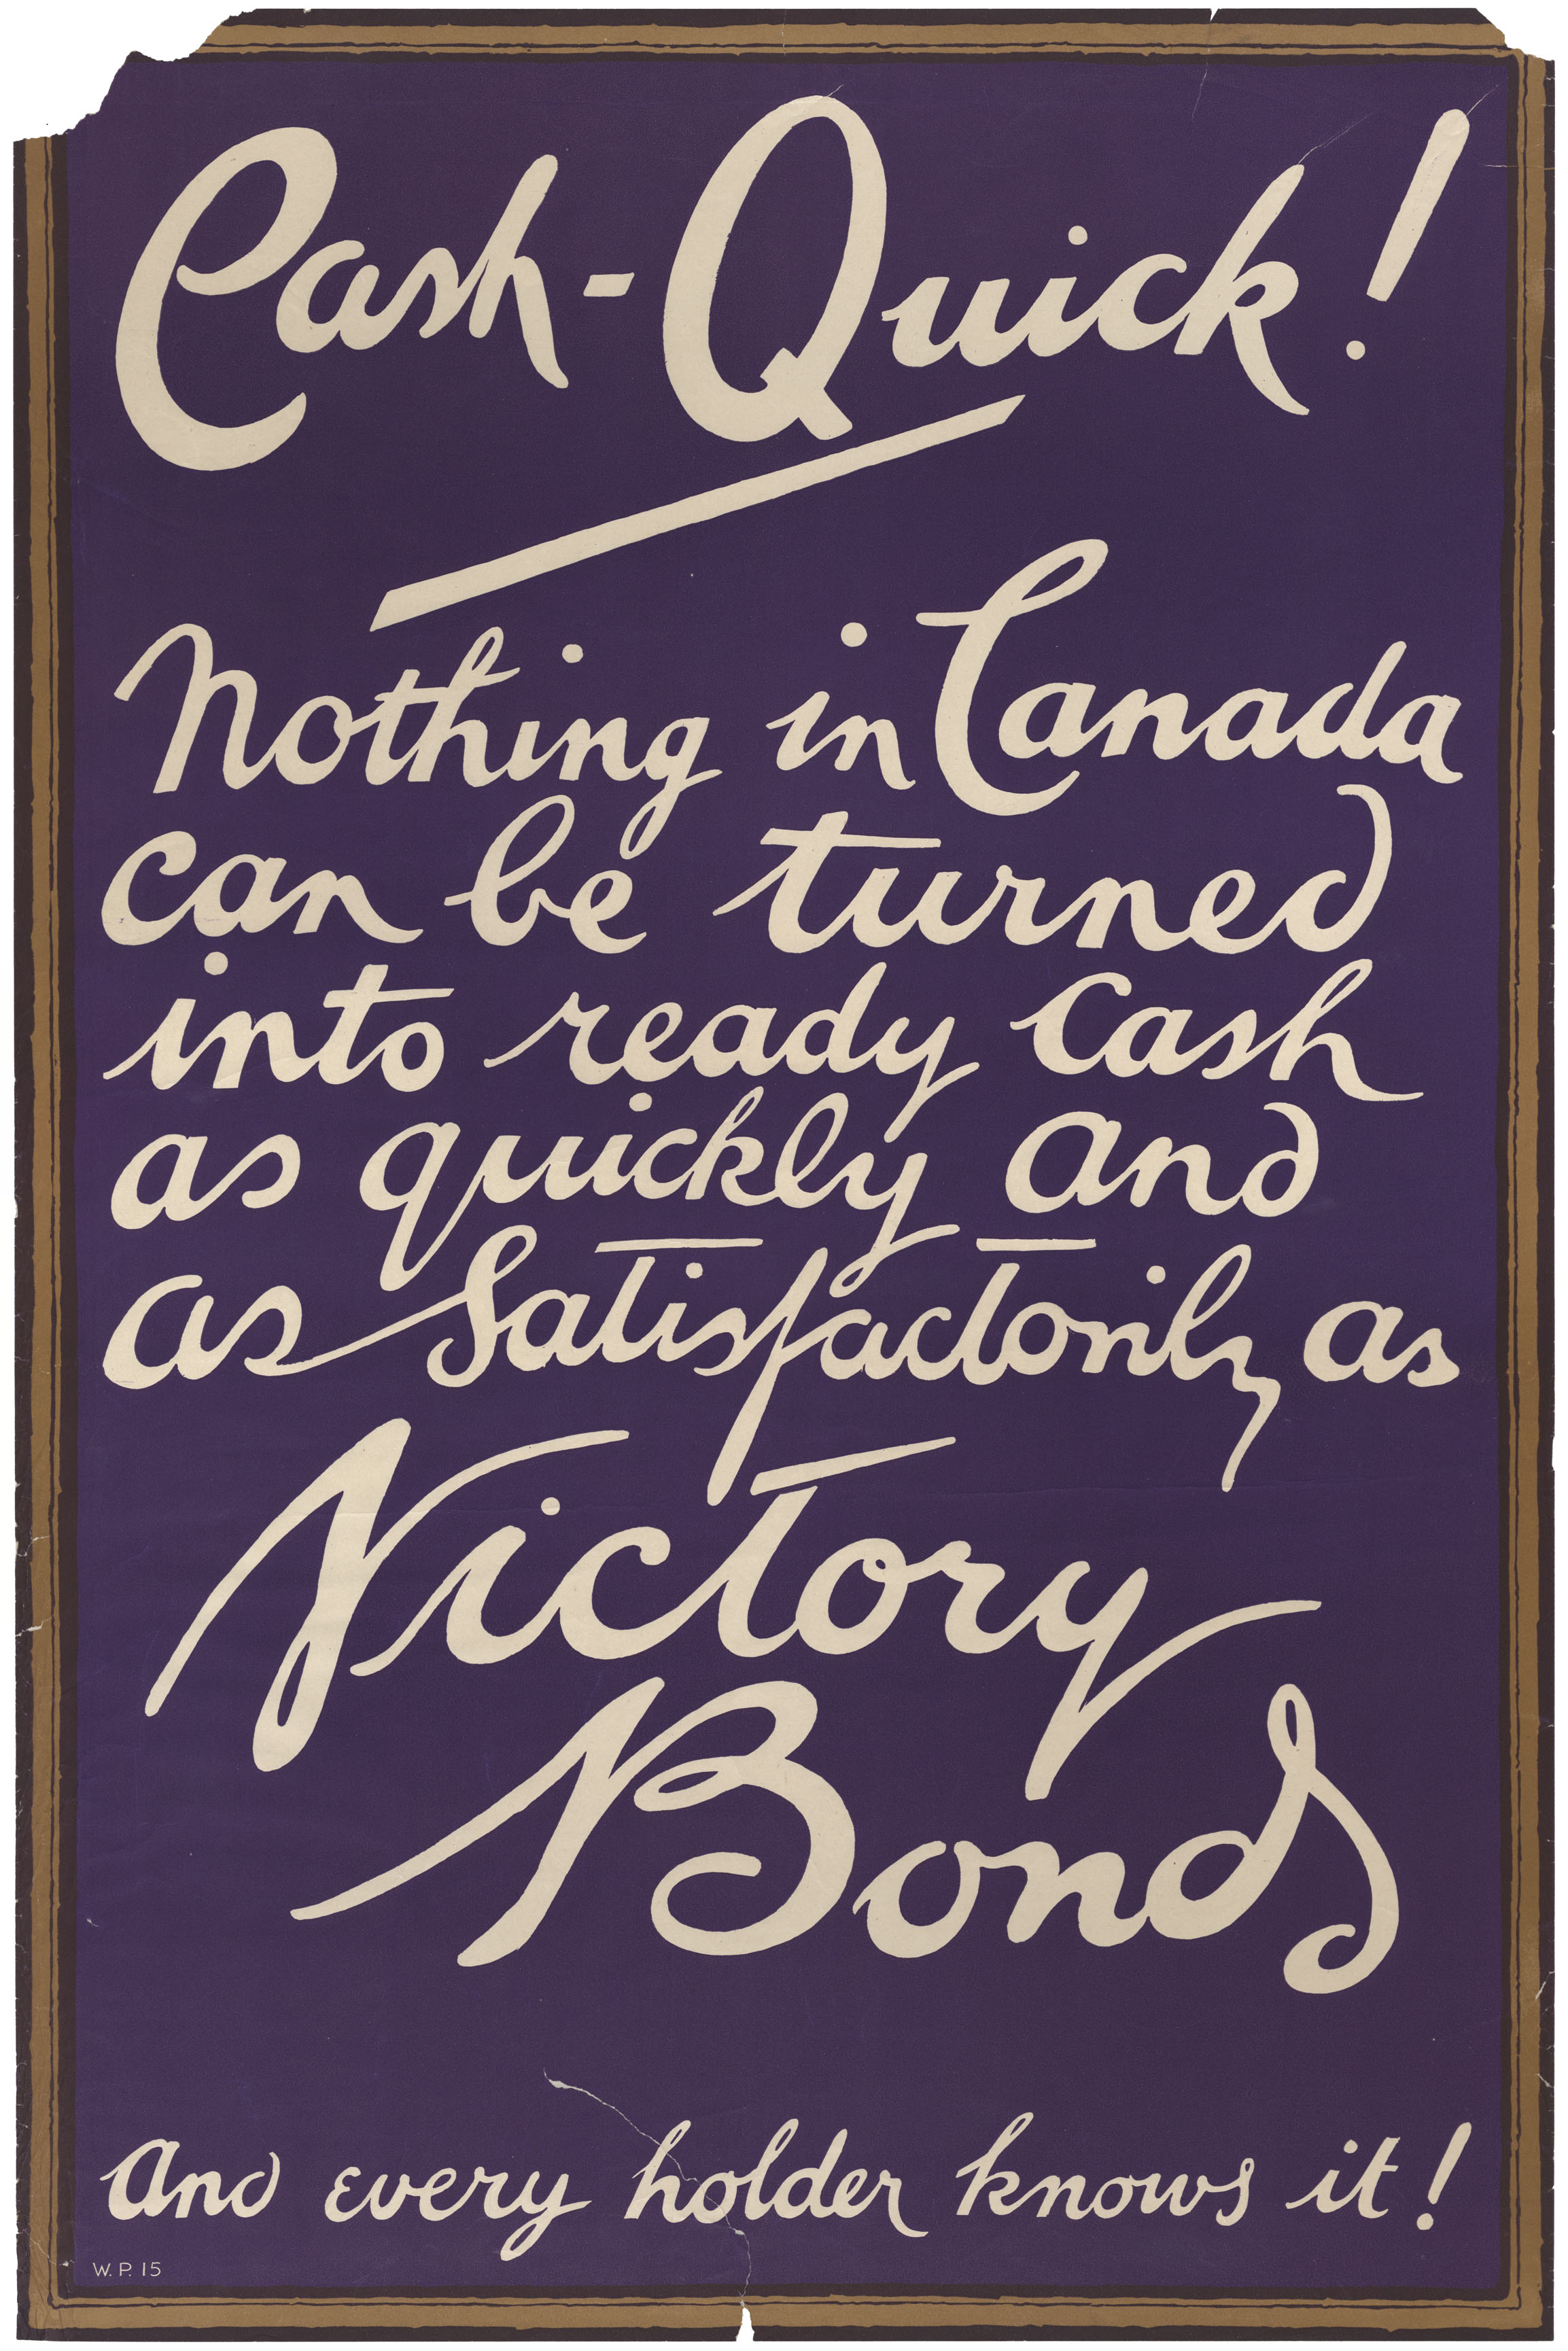 Cash - Quick! Nothing in Canada can be turned into ready cash as quickly and as satisfactorily as Victory Bonds and every holder knows it!